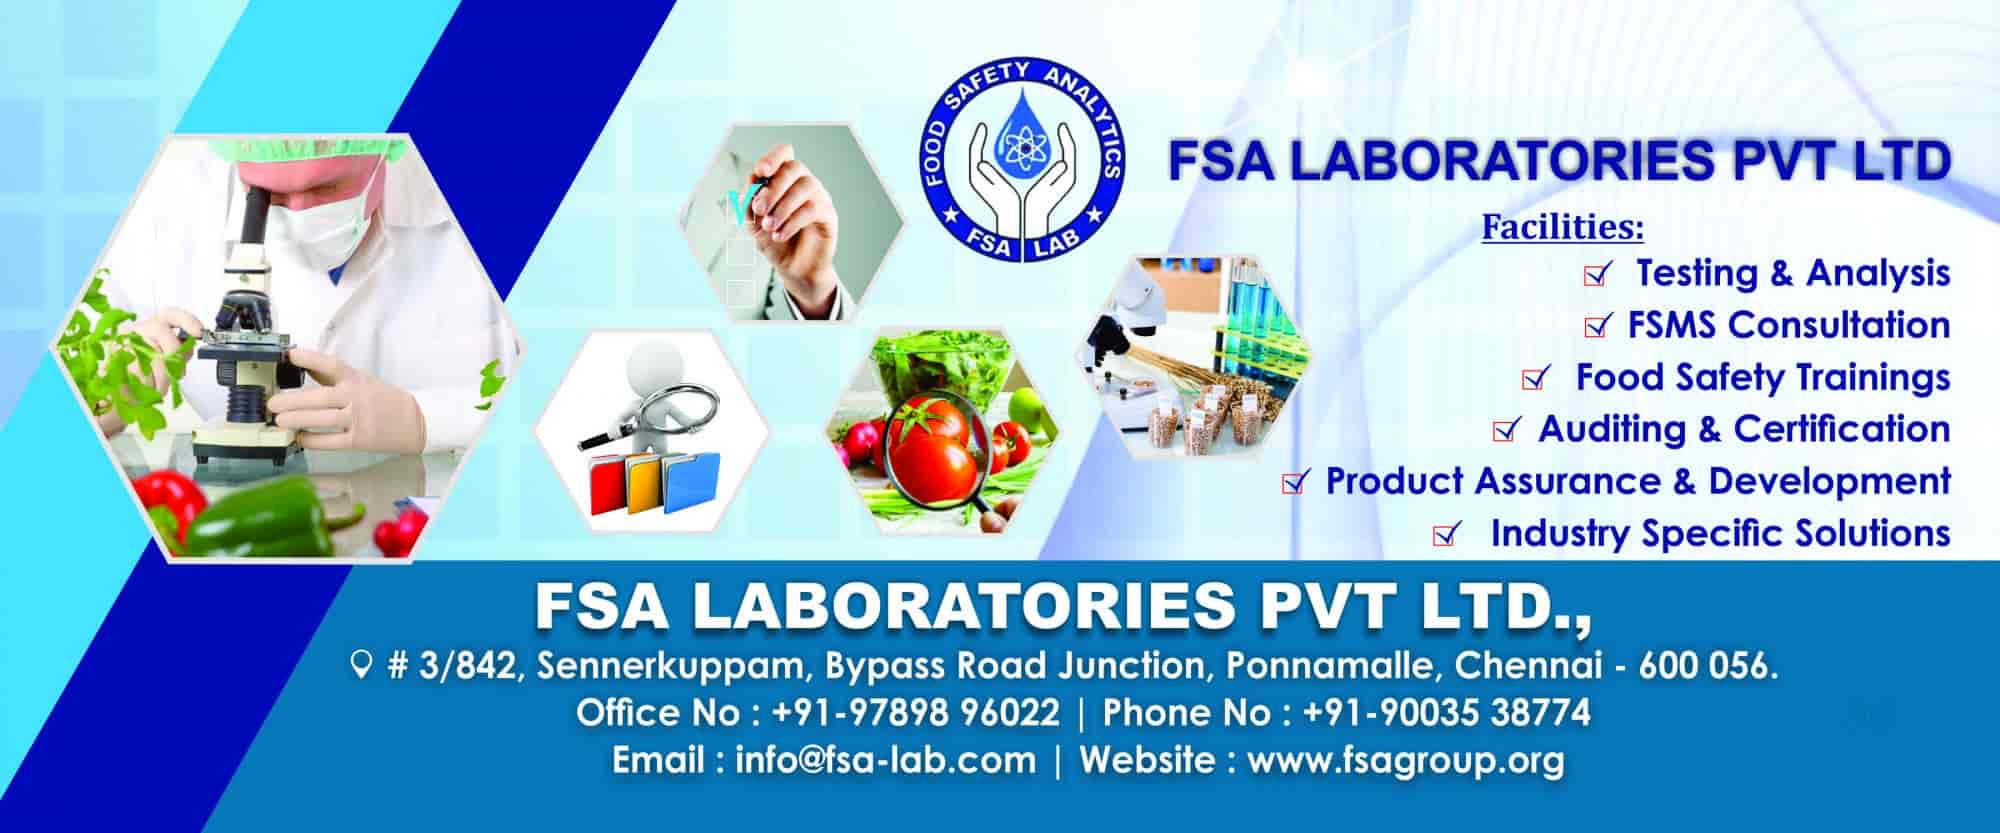 Fsa Laboratories Pvt Ltd Photos Poonamallee Chennai Pictures